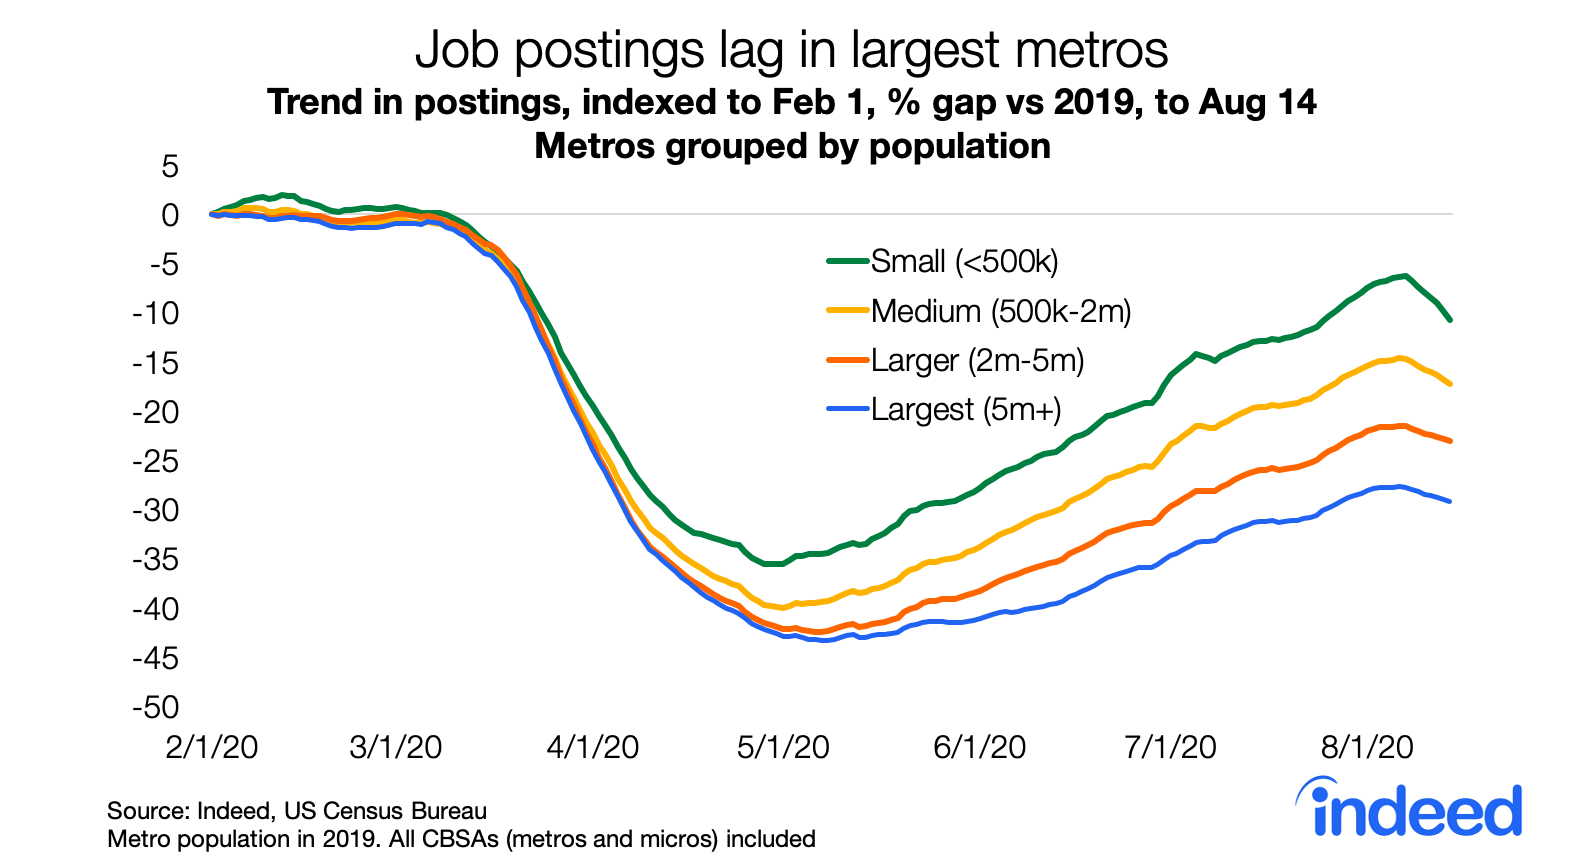 Job postings on Indeed lag in the largest US metros